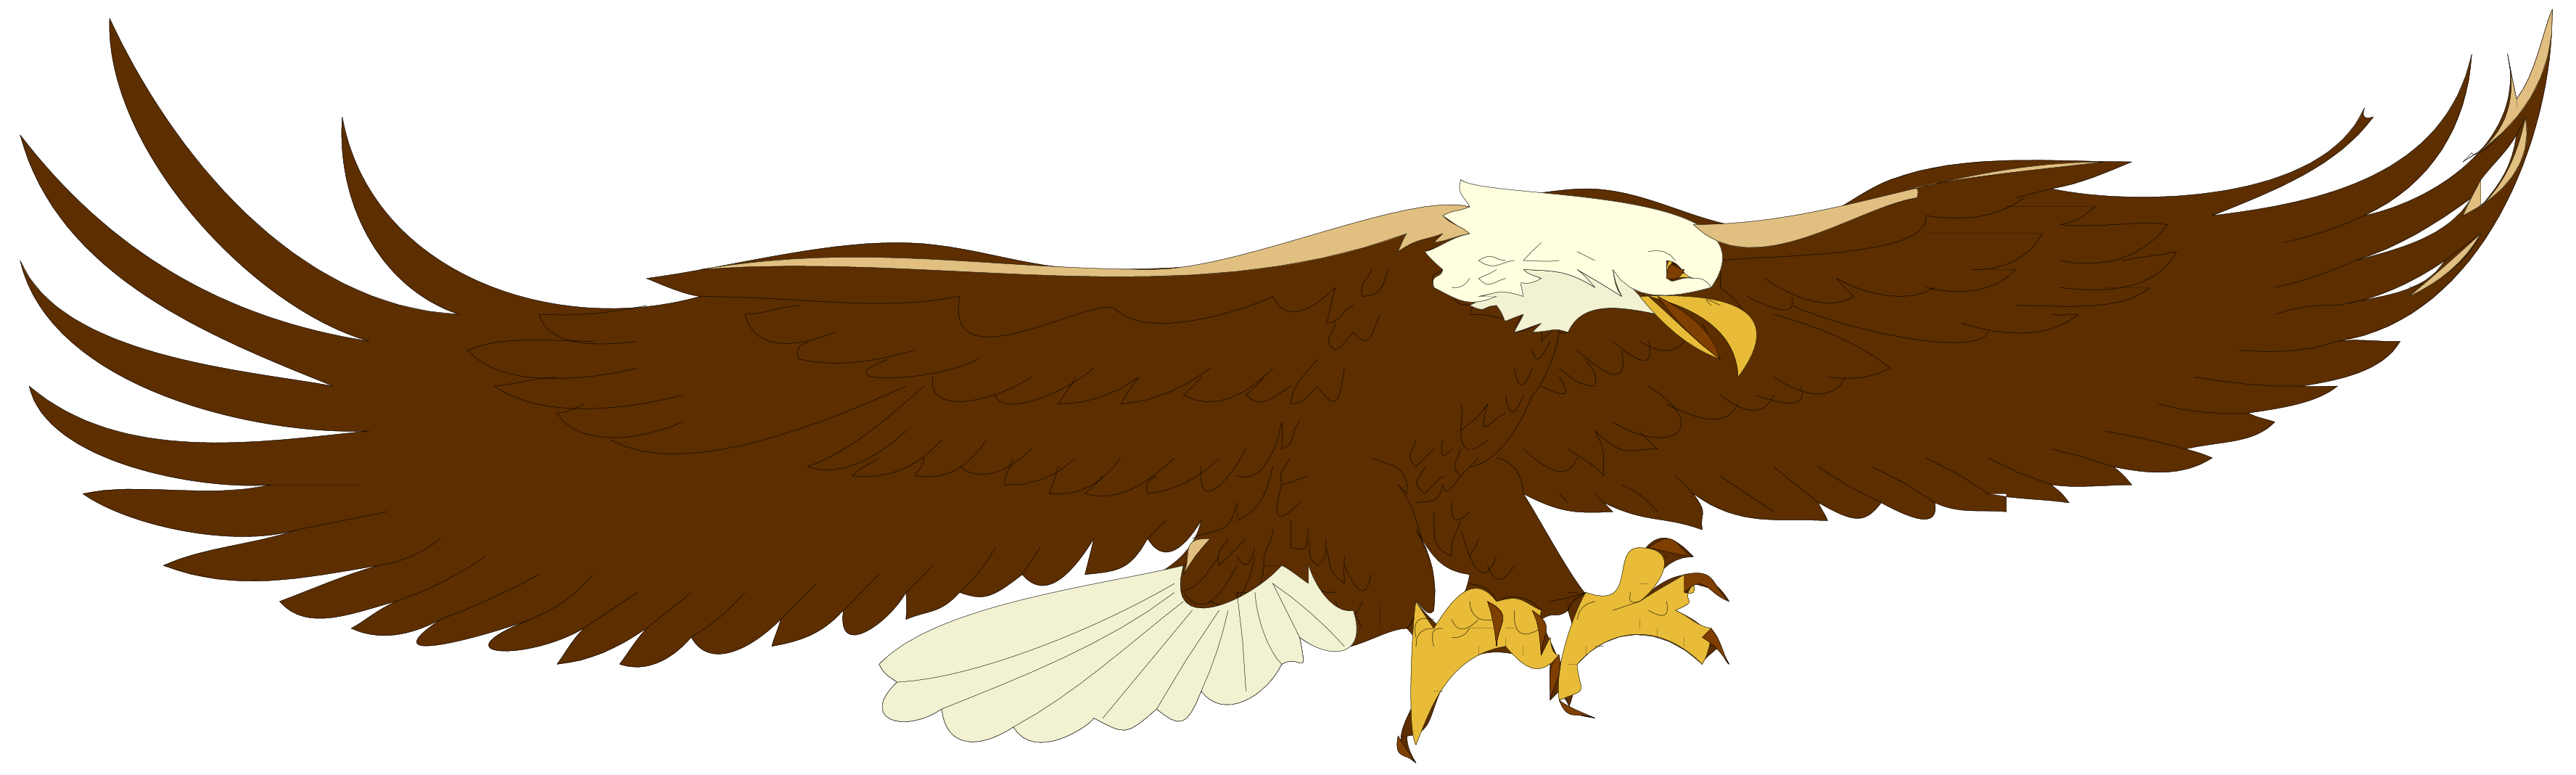 Eagle clipart simple. Cartoon hawk flying crazywidow